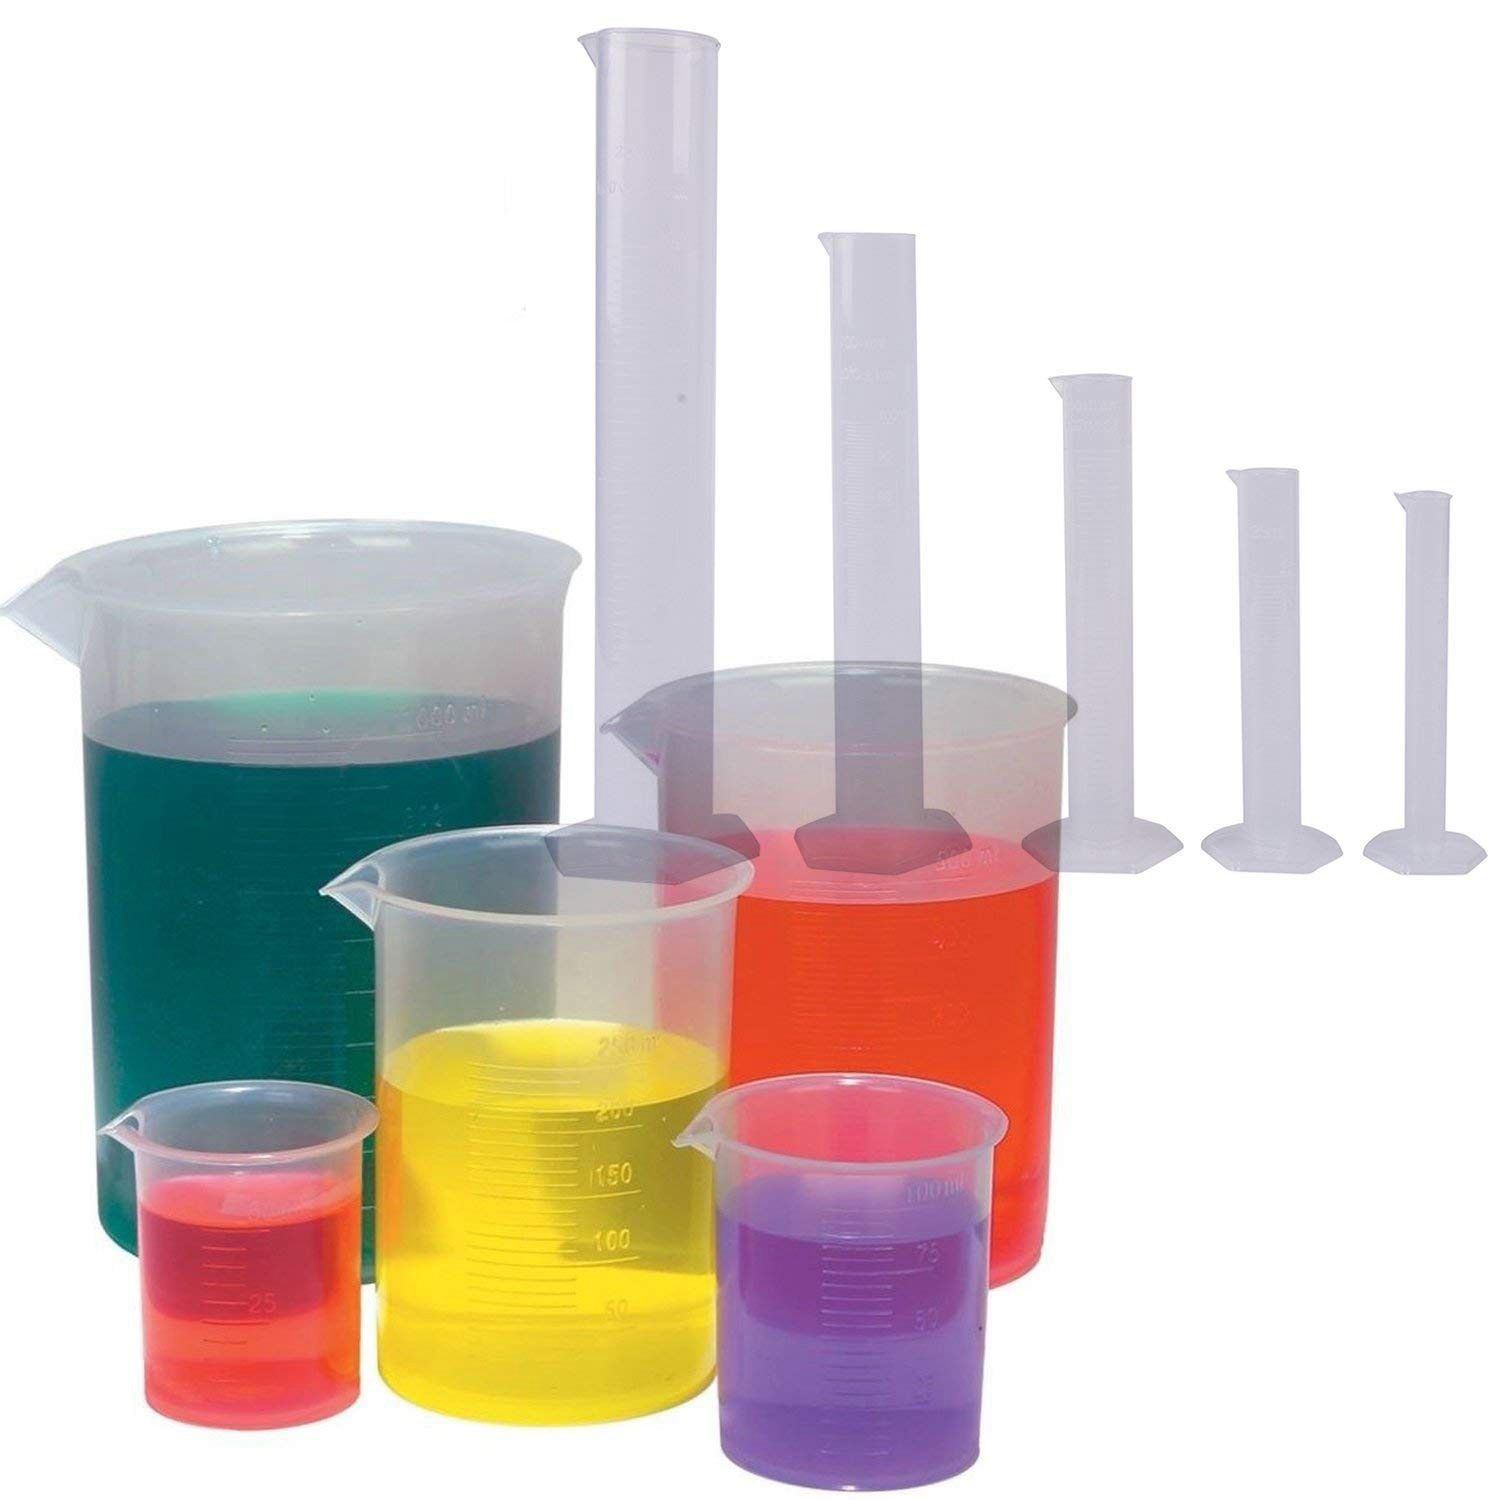 5 Sizes Clear Plastic Graduated Cylinders (10 25 50 100 250ml) 5 Pack Plastic Beakers Set- 50, 100, 250, 500, 1000ML5 Sizes Clear Plastic Graduated Cylinders (10 25 50 100 250ml) 5 Pack Plastic Beakers Set- 50, 100, 250, 500, 1000ML